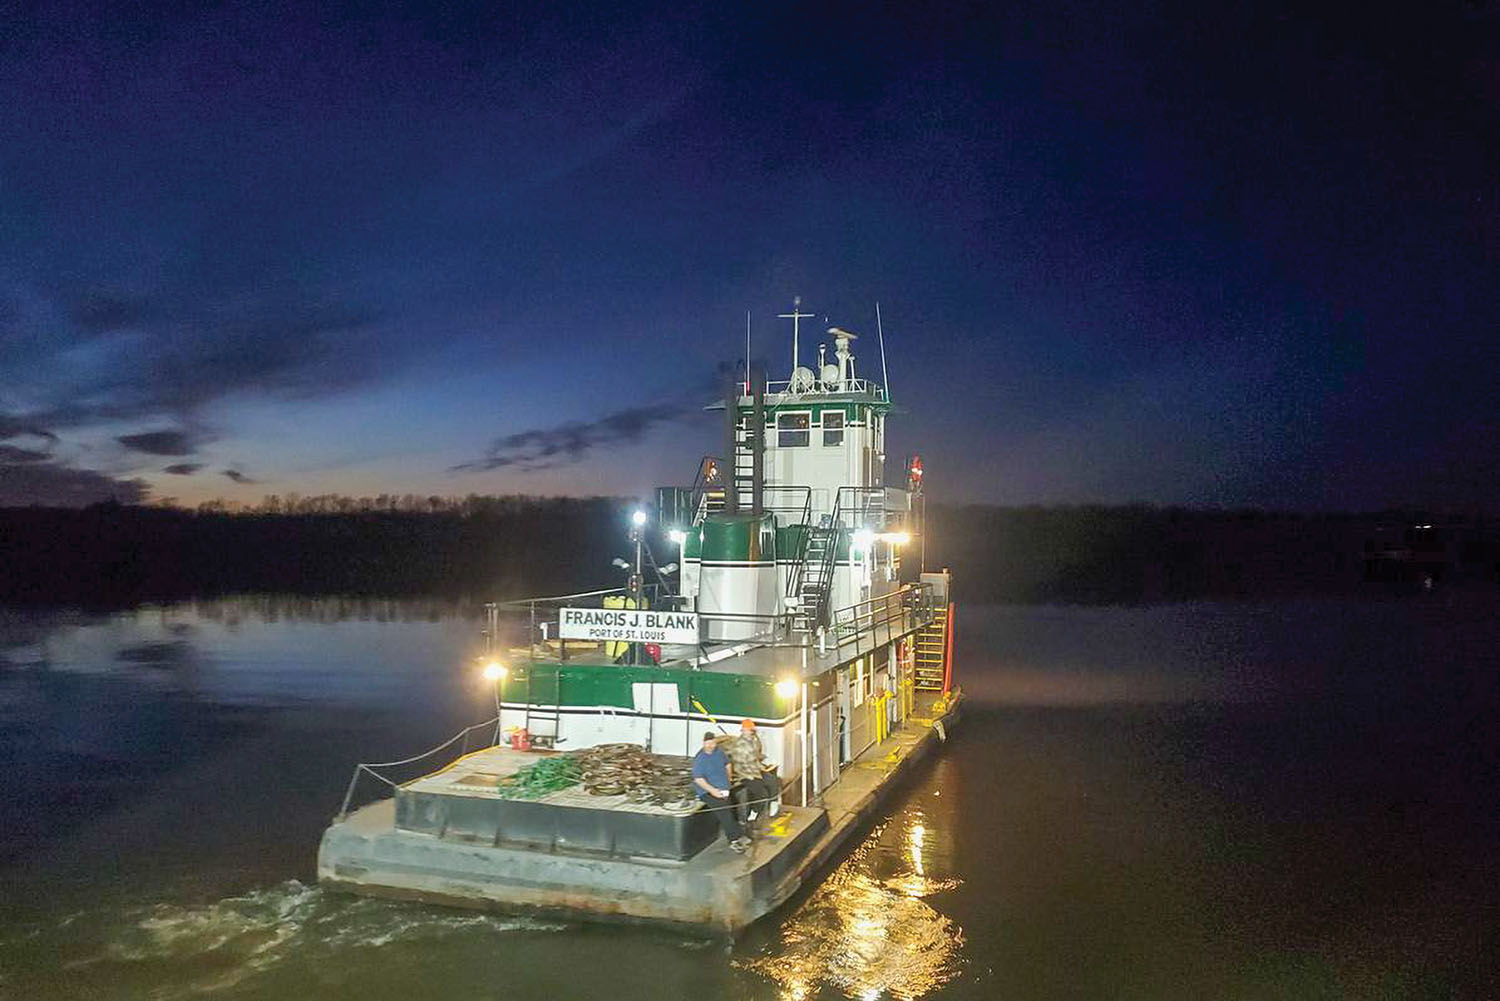 The mv. Francis J. Blank, built in 1966, is being completely restored at LD Marine in Amelia, La.